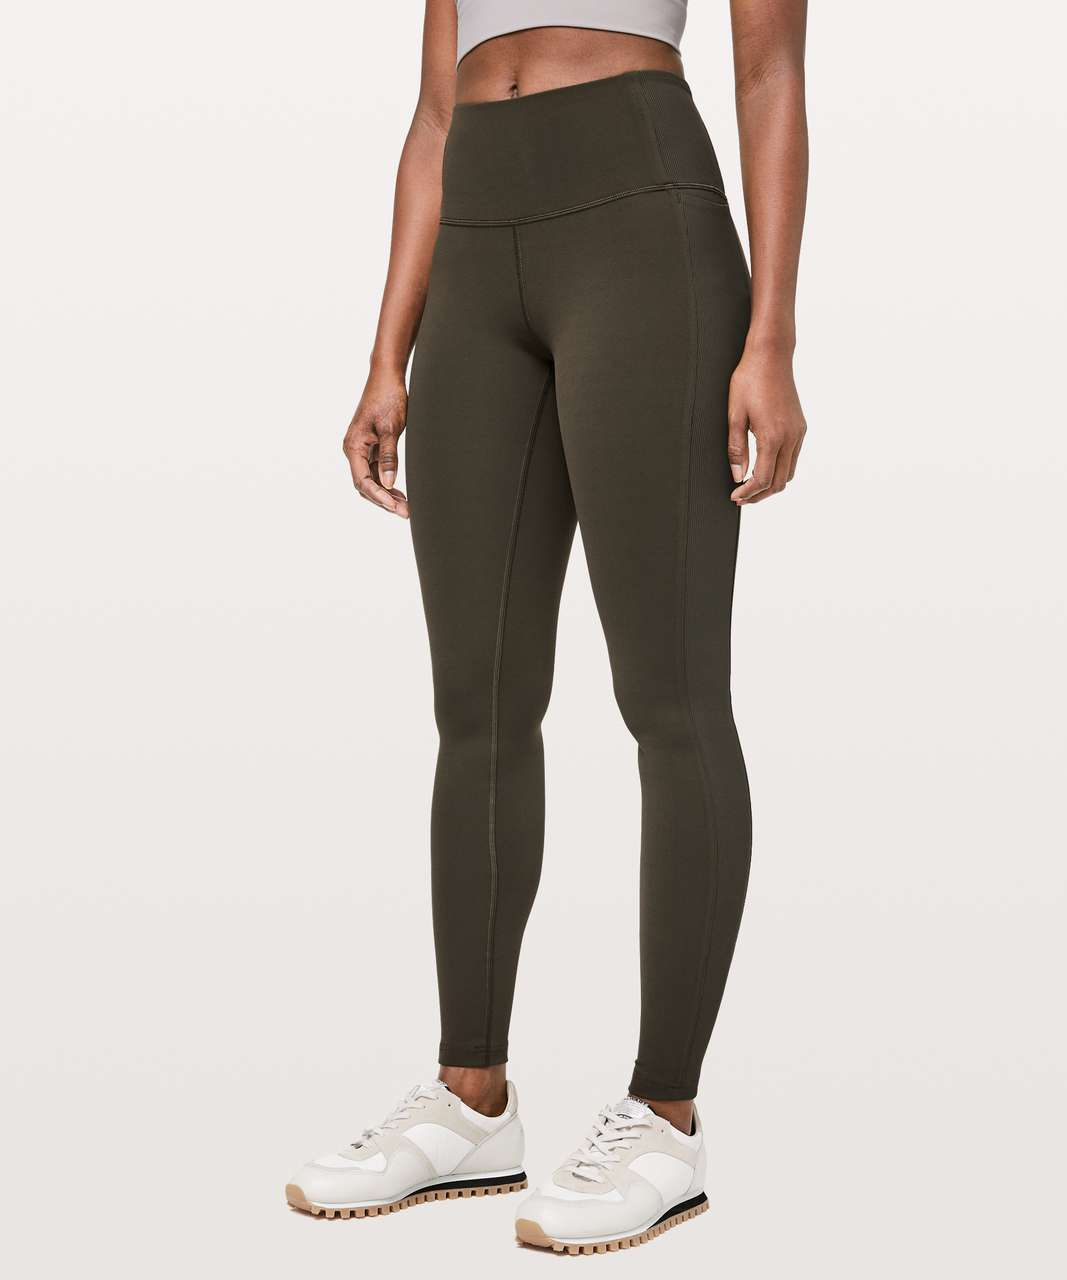 "Lululemon Wunder Under High-Rise Tight *Rib 28"" - Dark Olive"